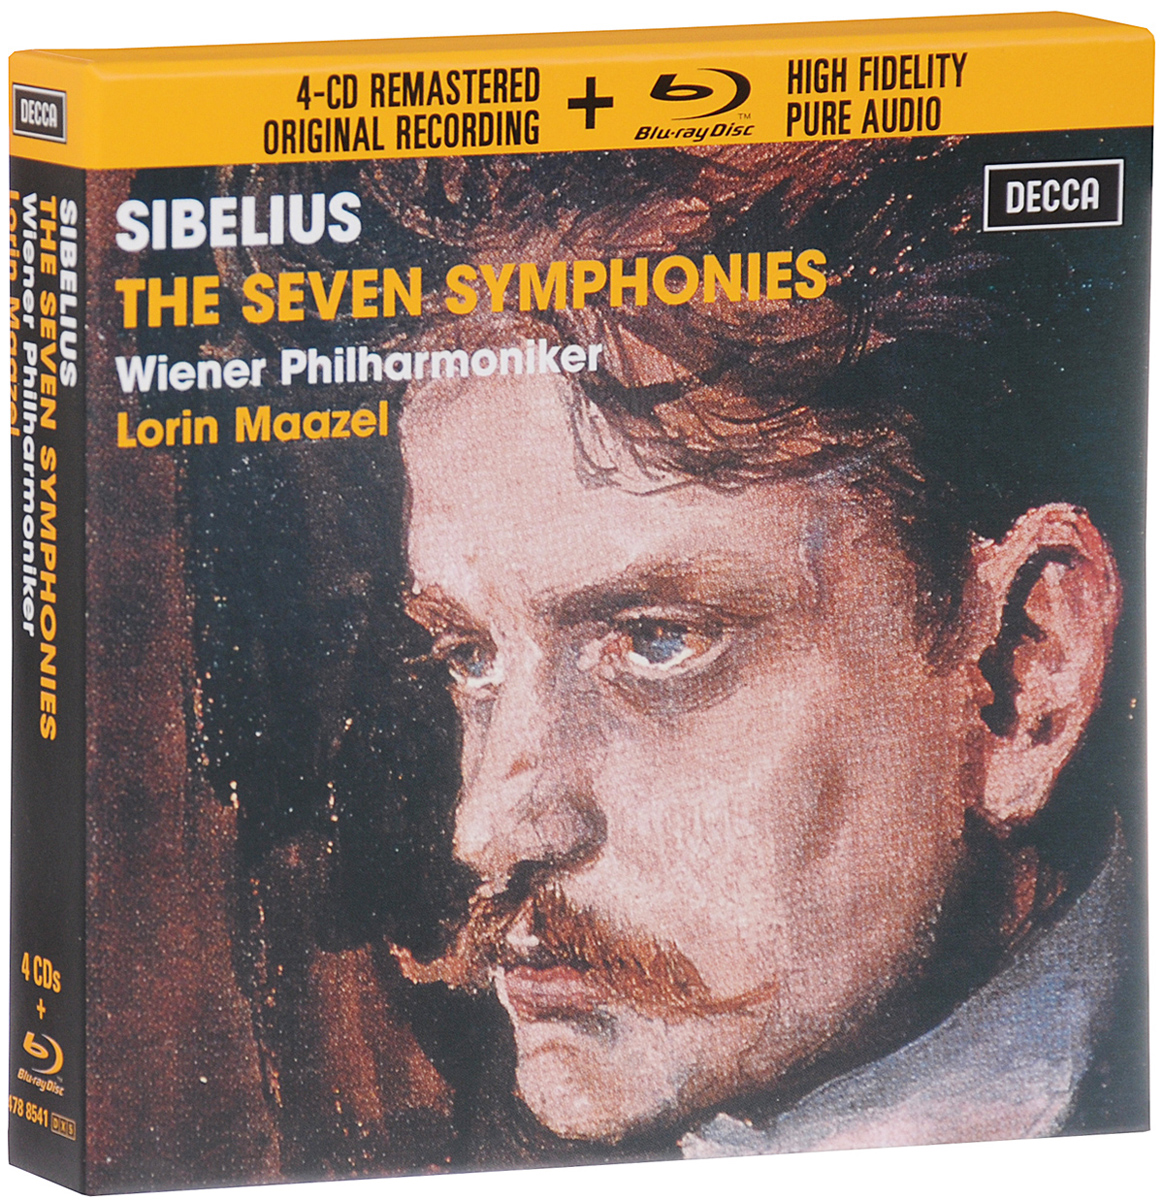 Лорин Маазель,Wiener Philharmoniker Lorin Maazel. Sibelius. The Seven Symphonies. Limited Edition (4 CD + Blu-Ray Audio) w t matiegka fantaisie in c major op 4